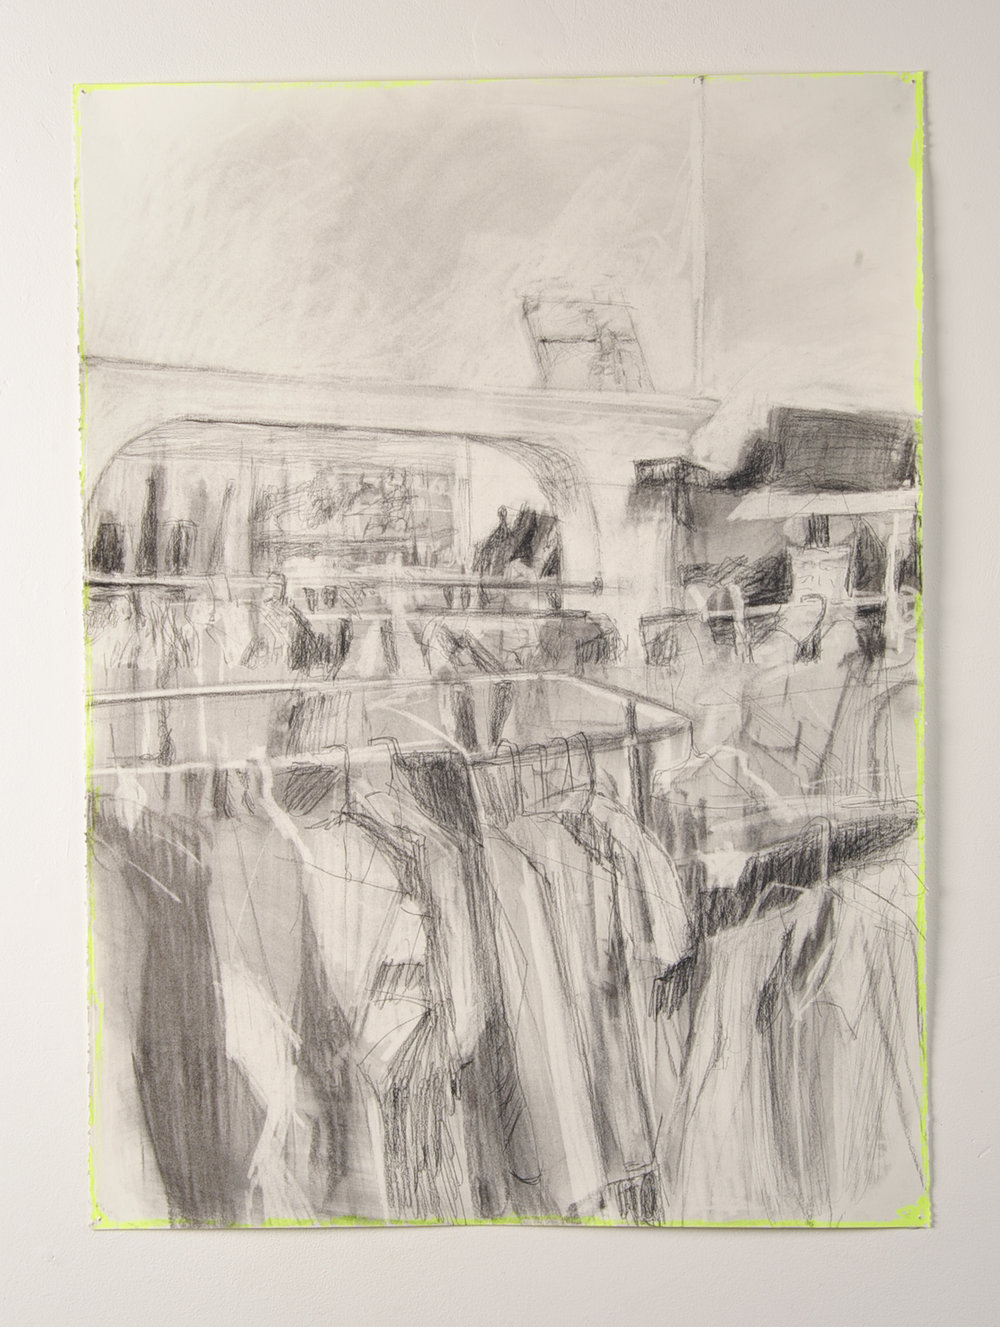 SHUTTER SPEED LUMINOSITY  Collected clothes  Charcoal and highlighter  59.4cm x 84.1cm, 2010